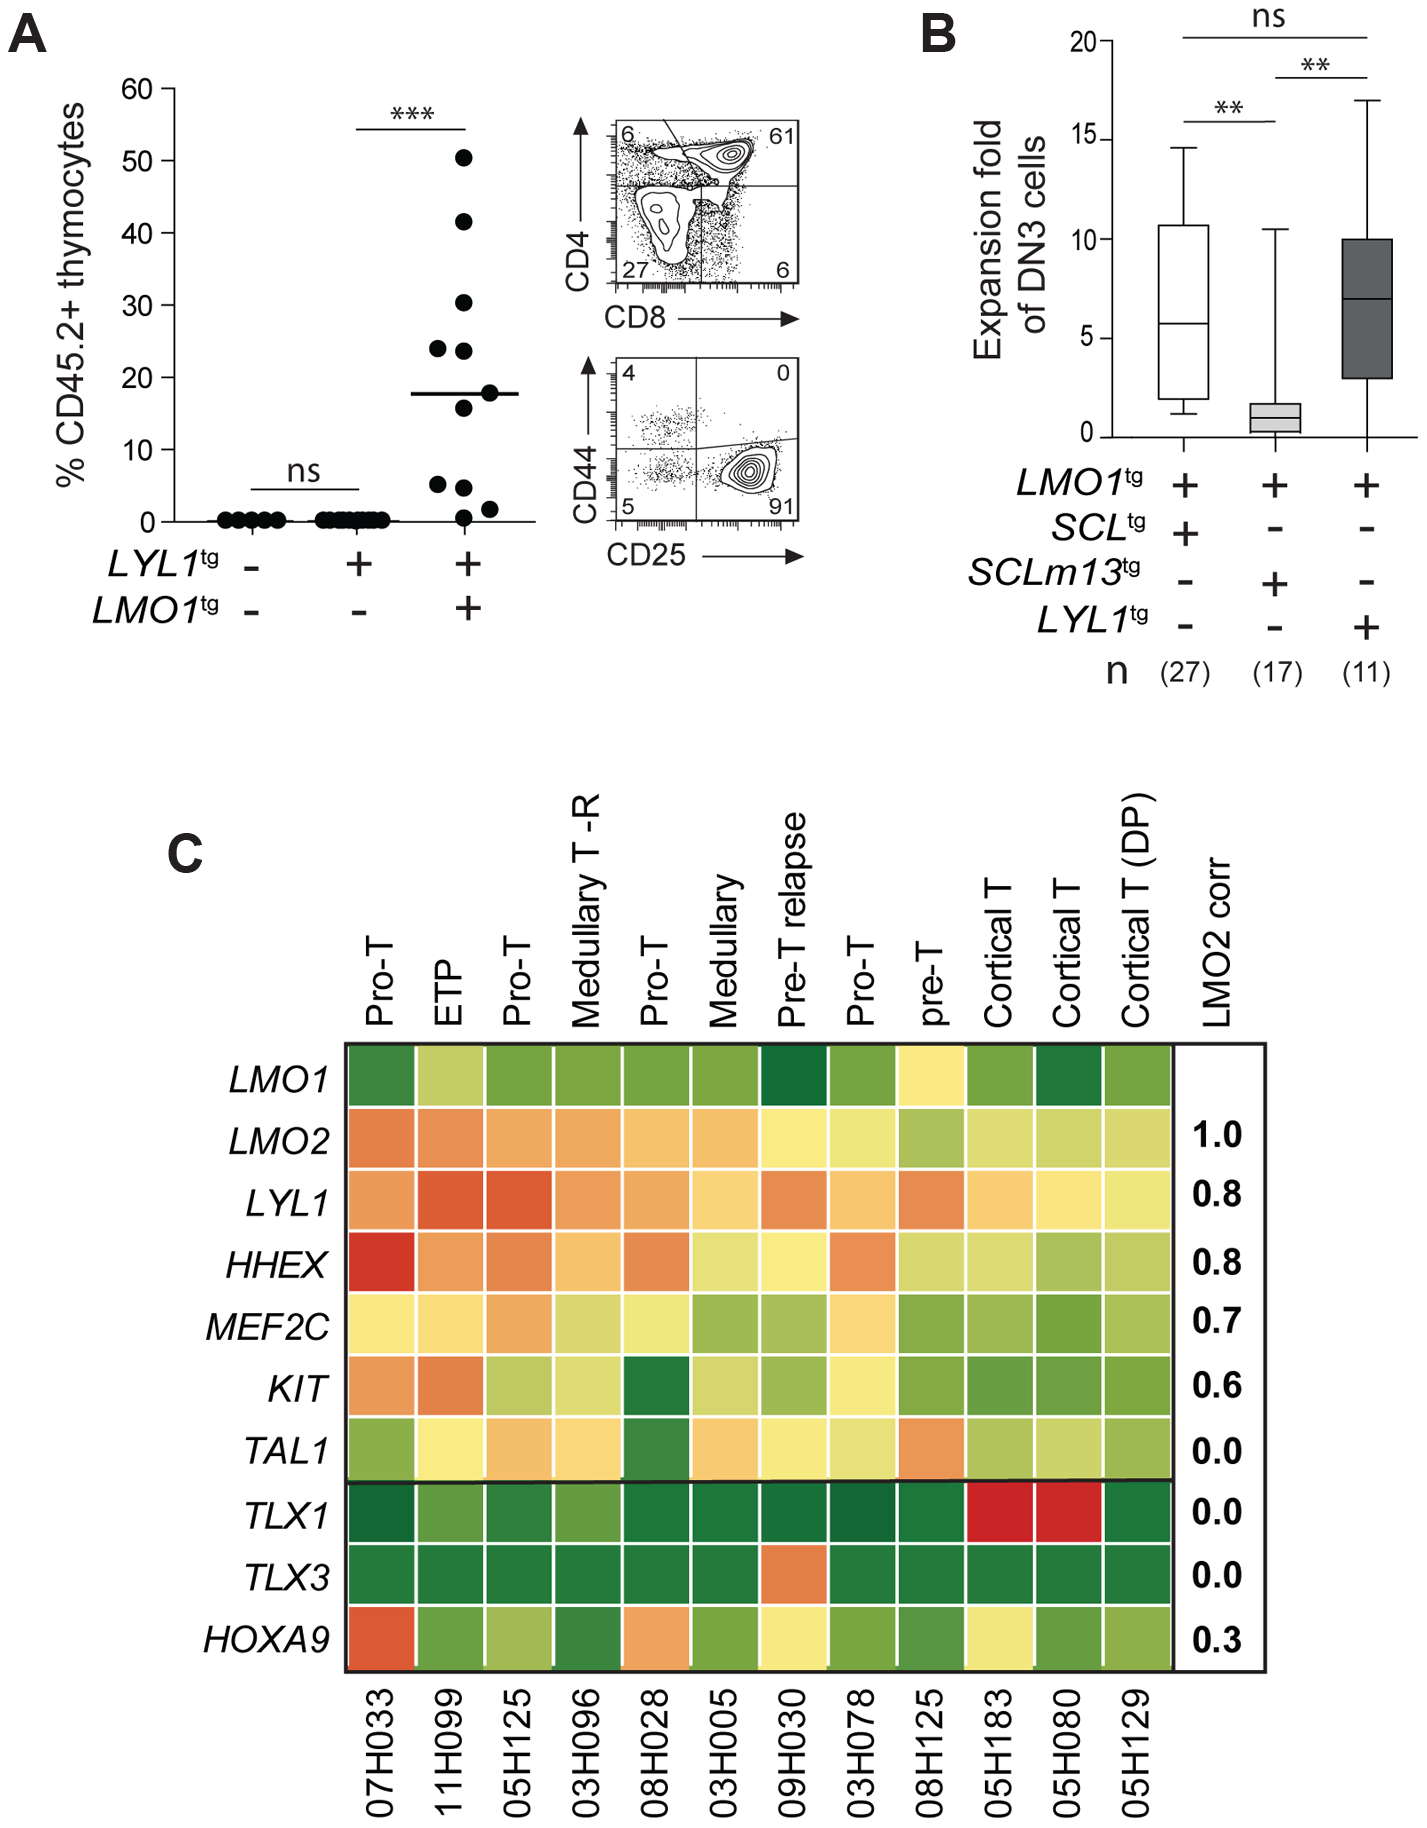 LYL1 and LMO1/2 are co-expressed in human T-ALL and collaborate to reprogram thymocytes.